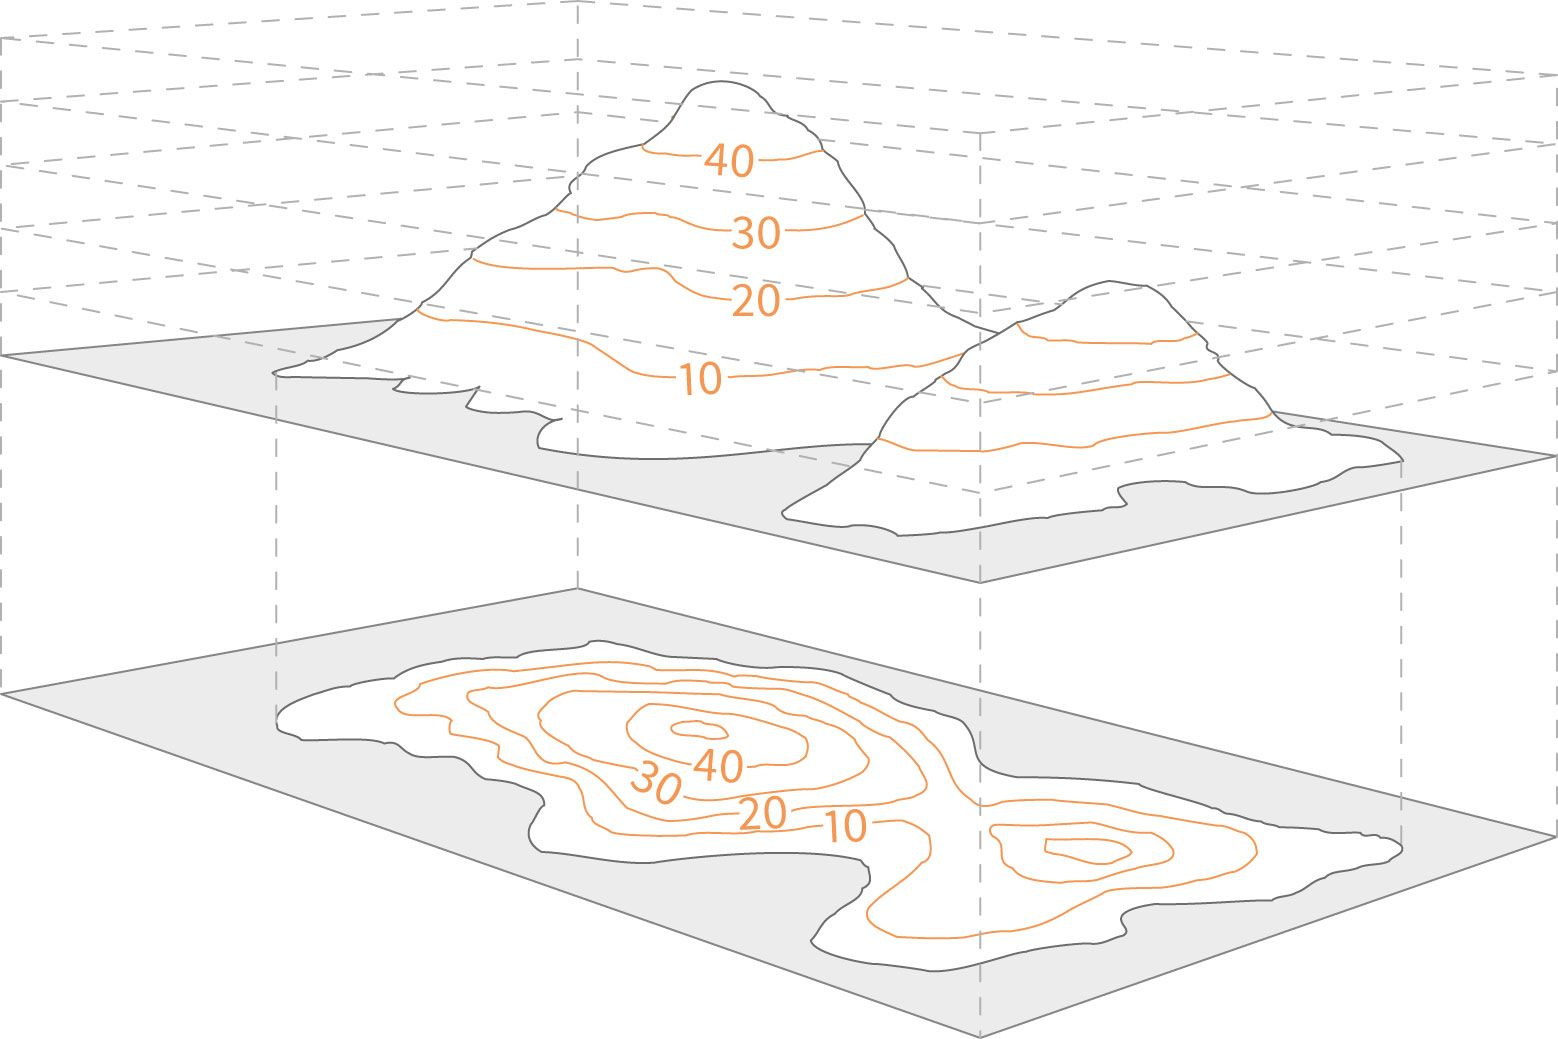 Beginners Guide To Reading Contour Lines Contour Line Map Symbols Topographic Map